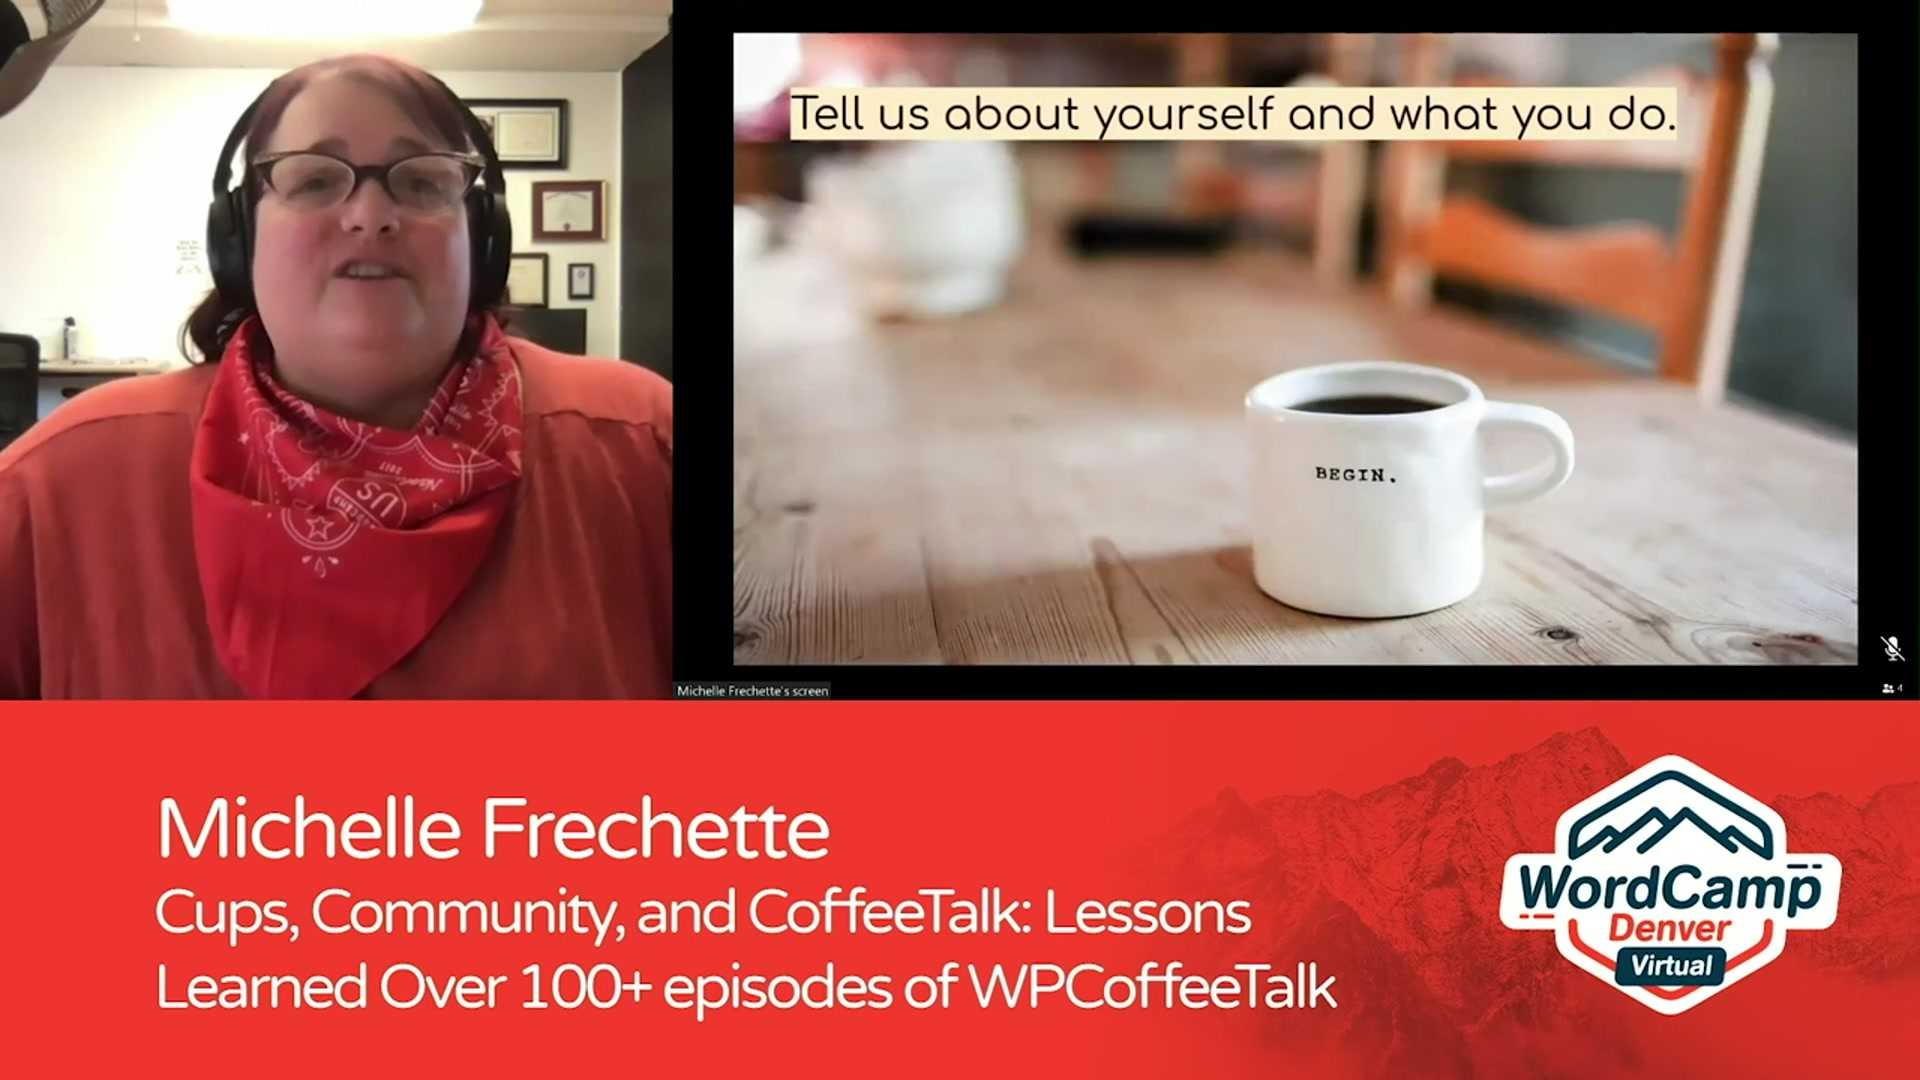 Michelle Frechette: Cups, Community, and CoffeeTalk – Lessons Learned Over 100+ Episodes of WPCoffeeTalk